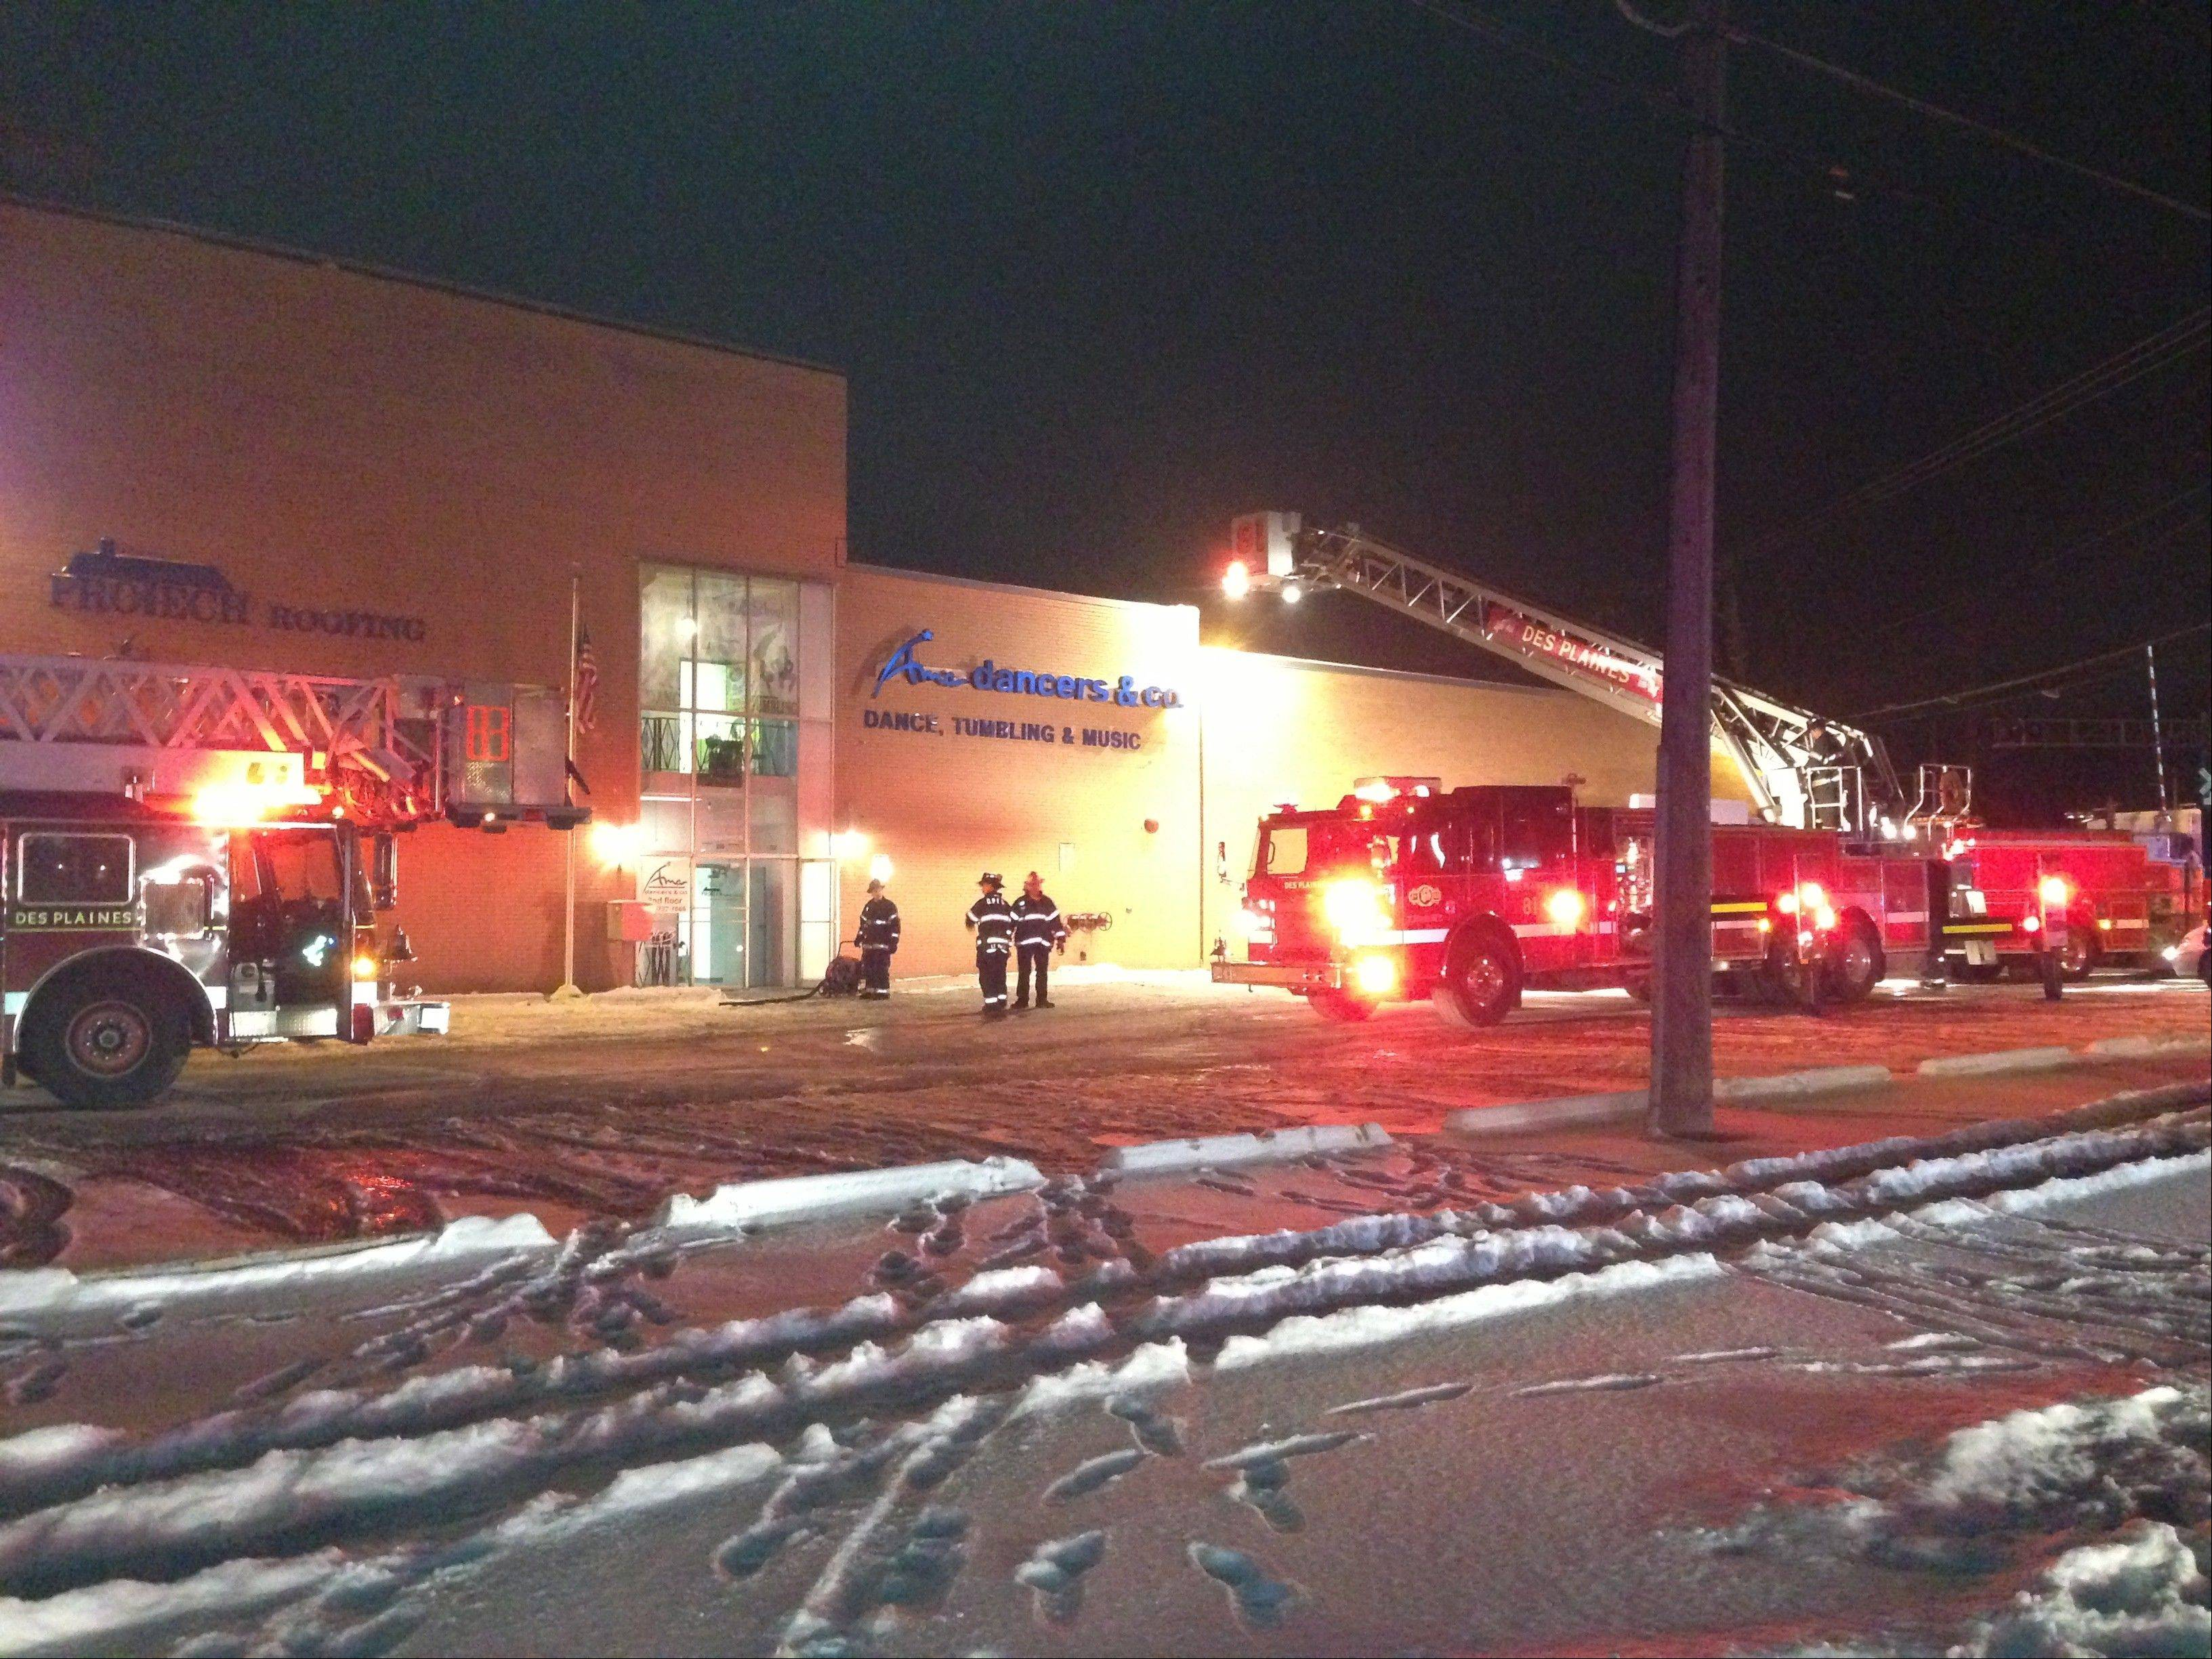 Des Plaines firefighters responded to a blaze just after midnight Sunday in a commercial building in the 200 block of Graceland Avenue. Officials said the fire caused $25,000 in damages, but it could have been much worse if the building hadn't been equipped with sprinklers.